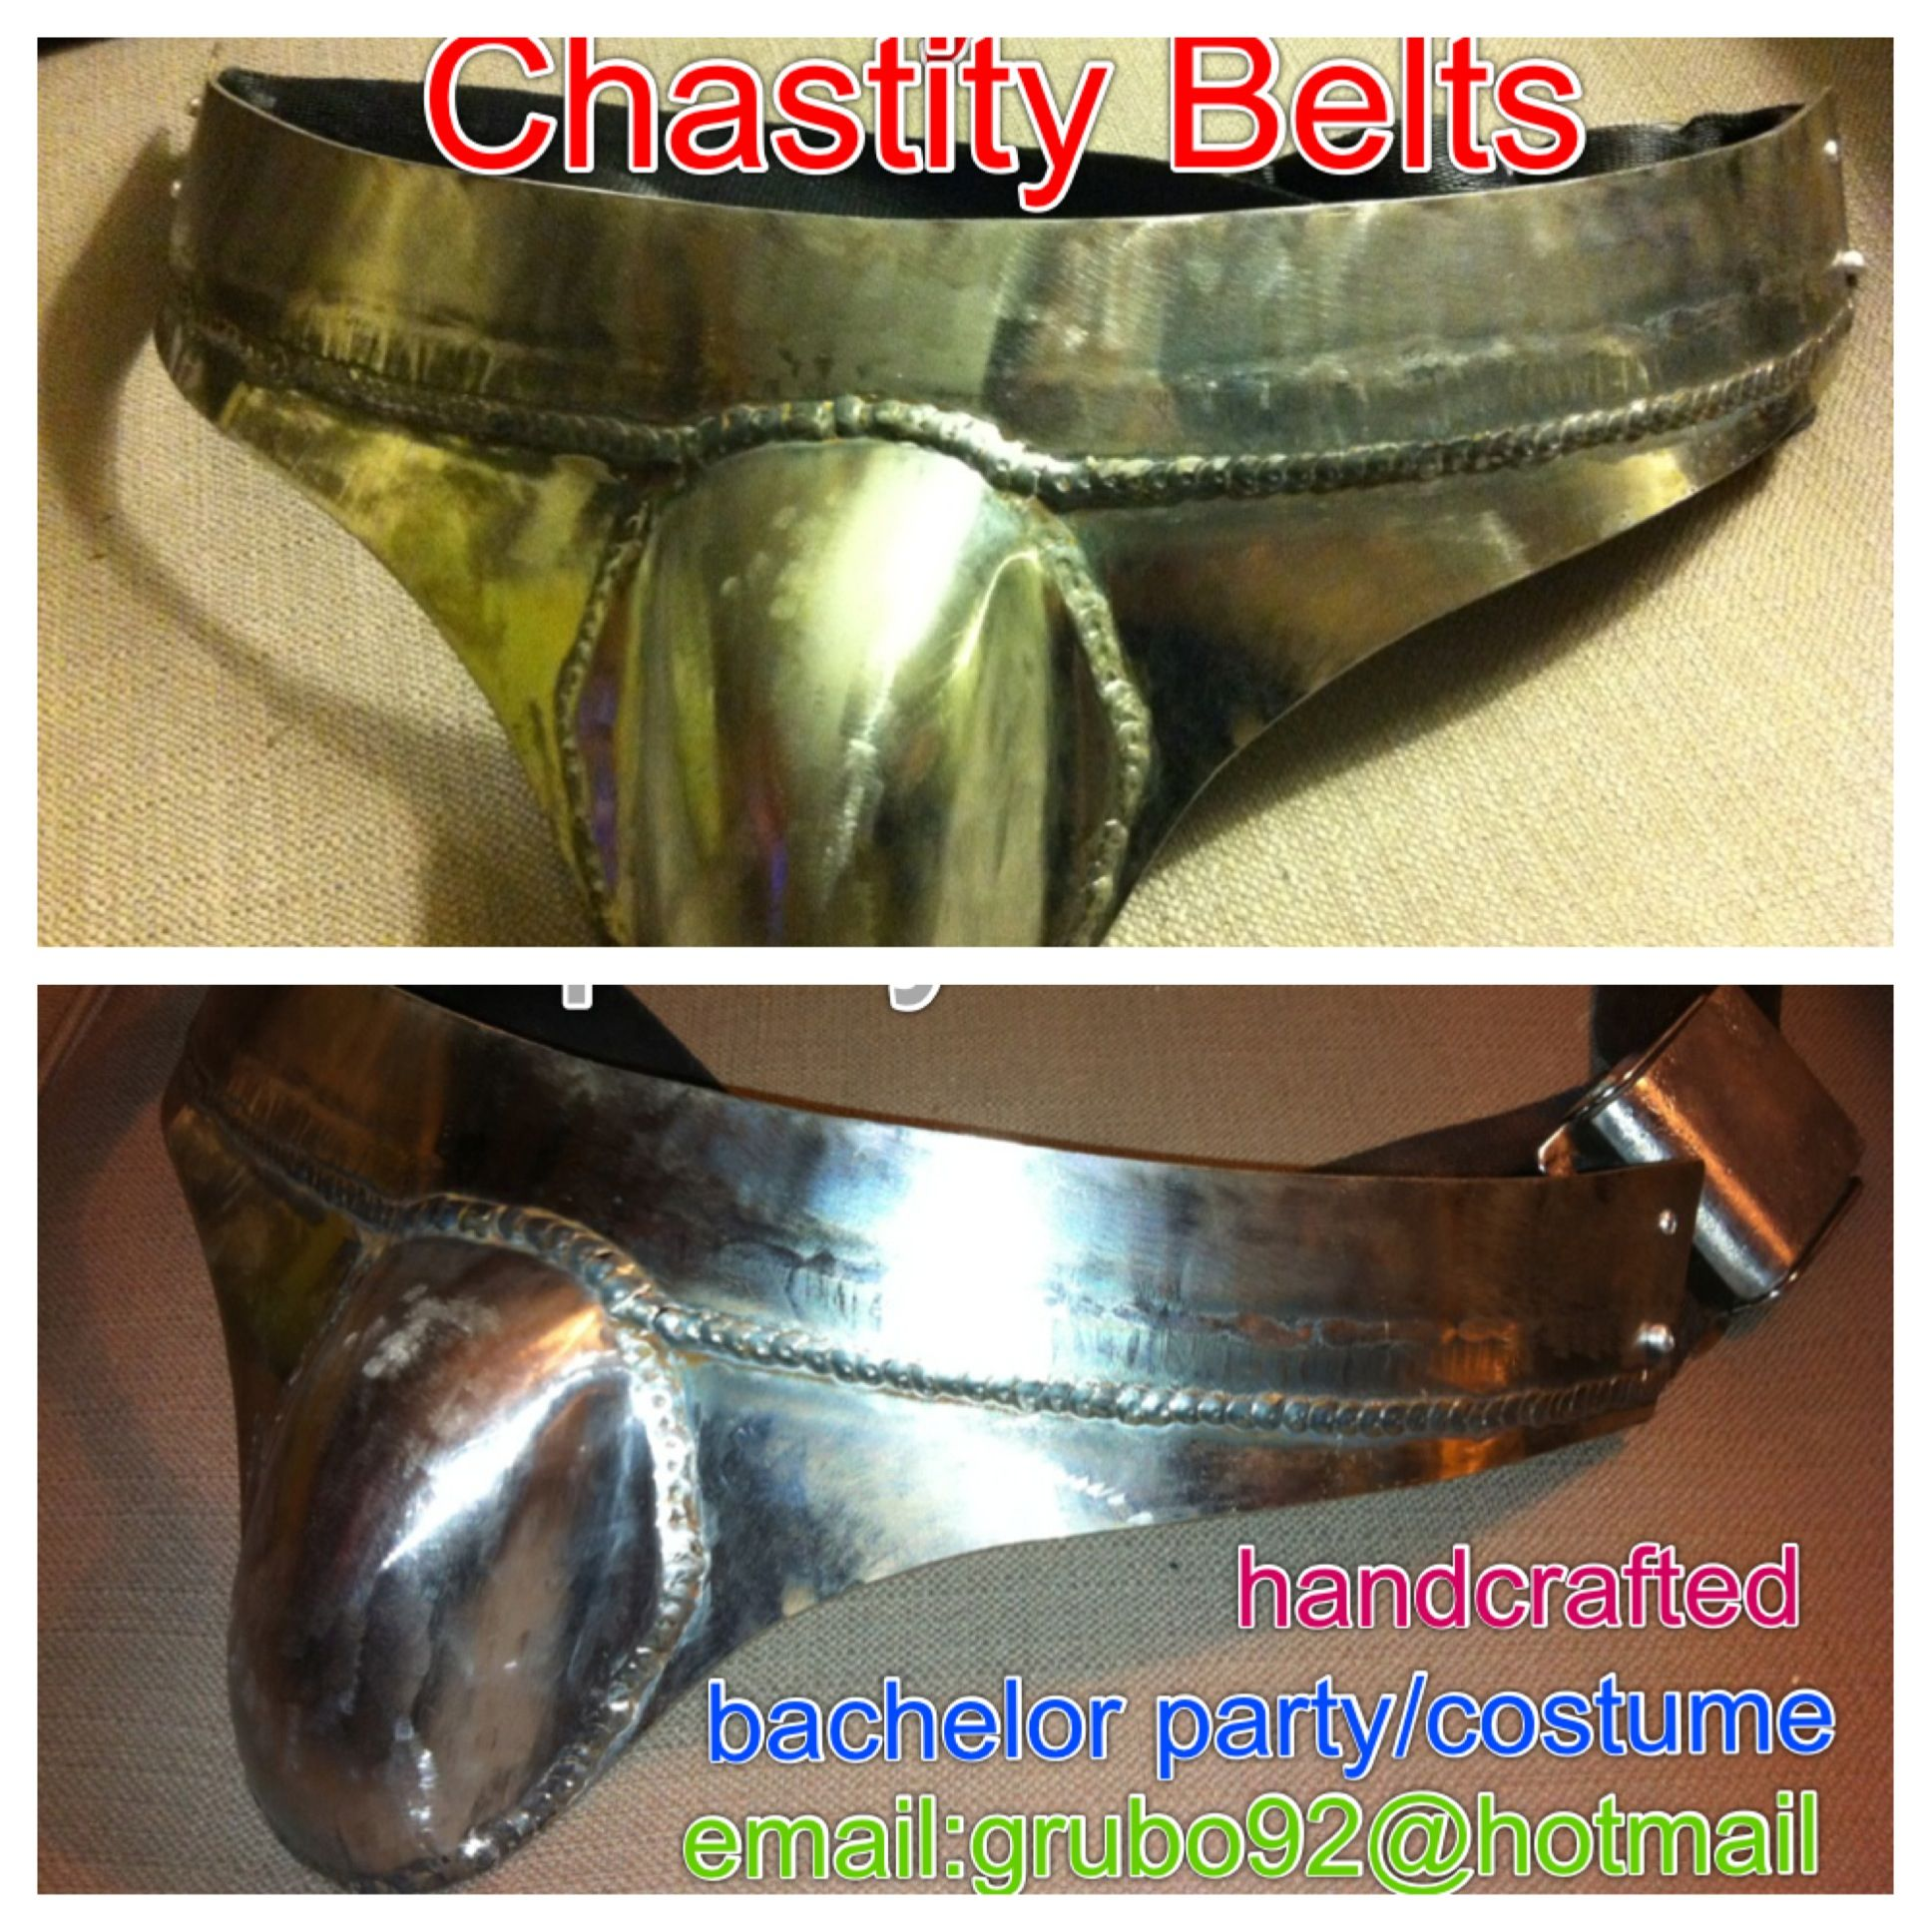 Chastity belts by Tony - contact grubo92@hotmail.com - Great gag ...